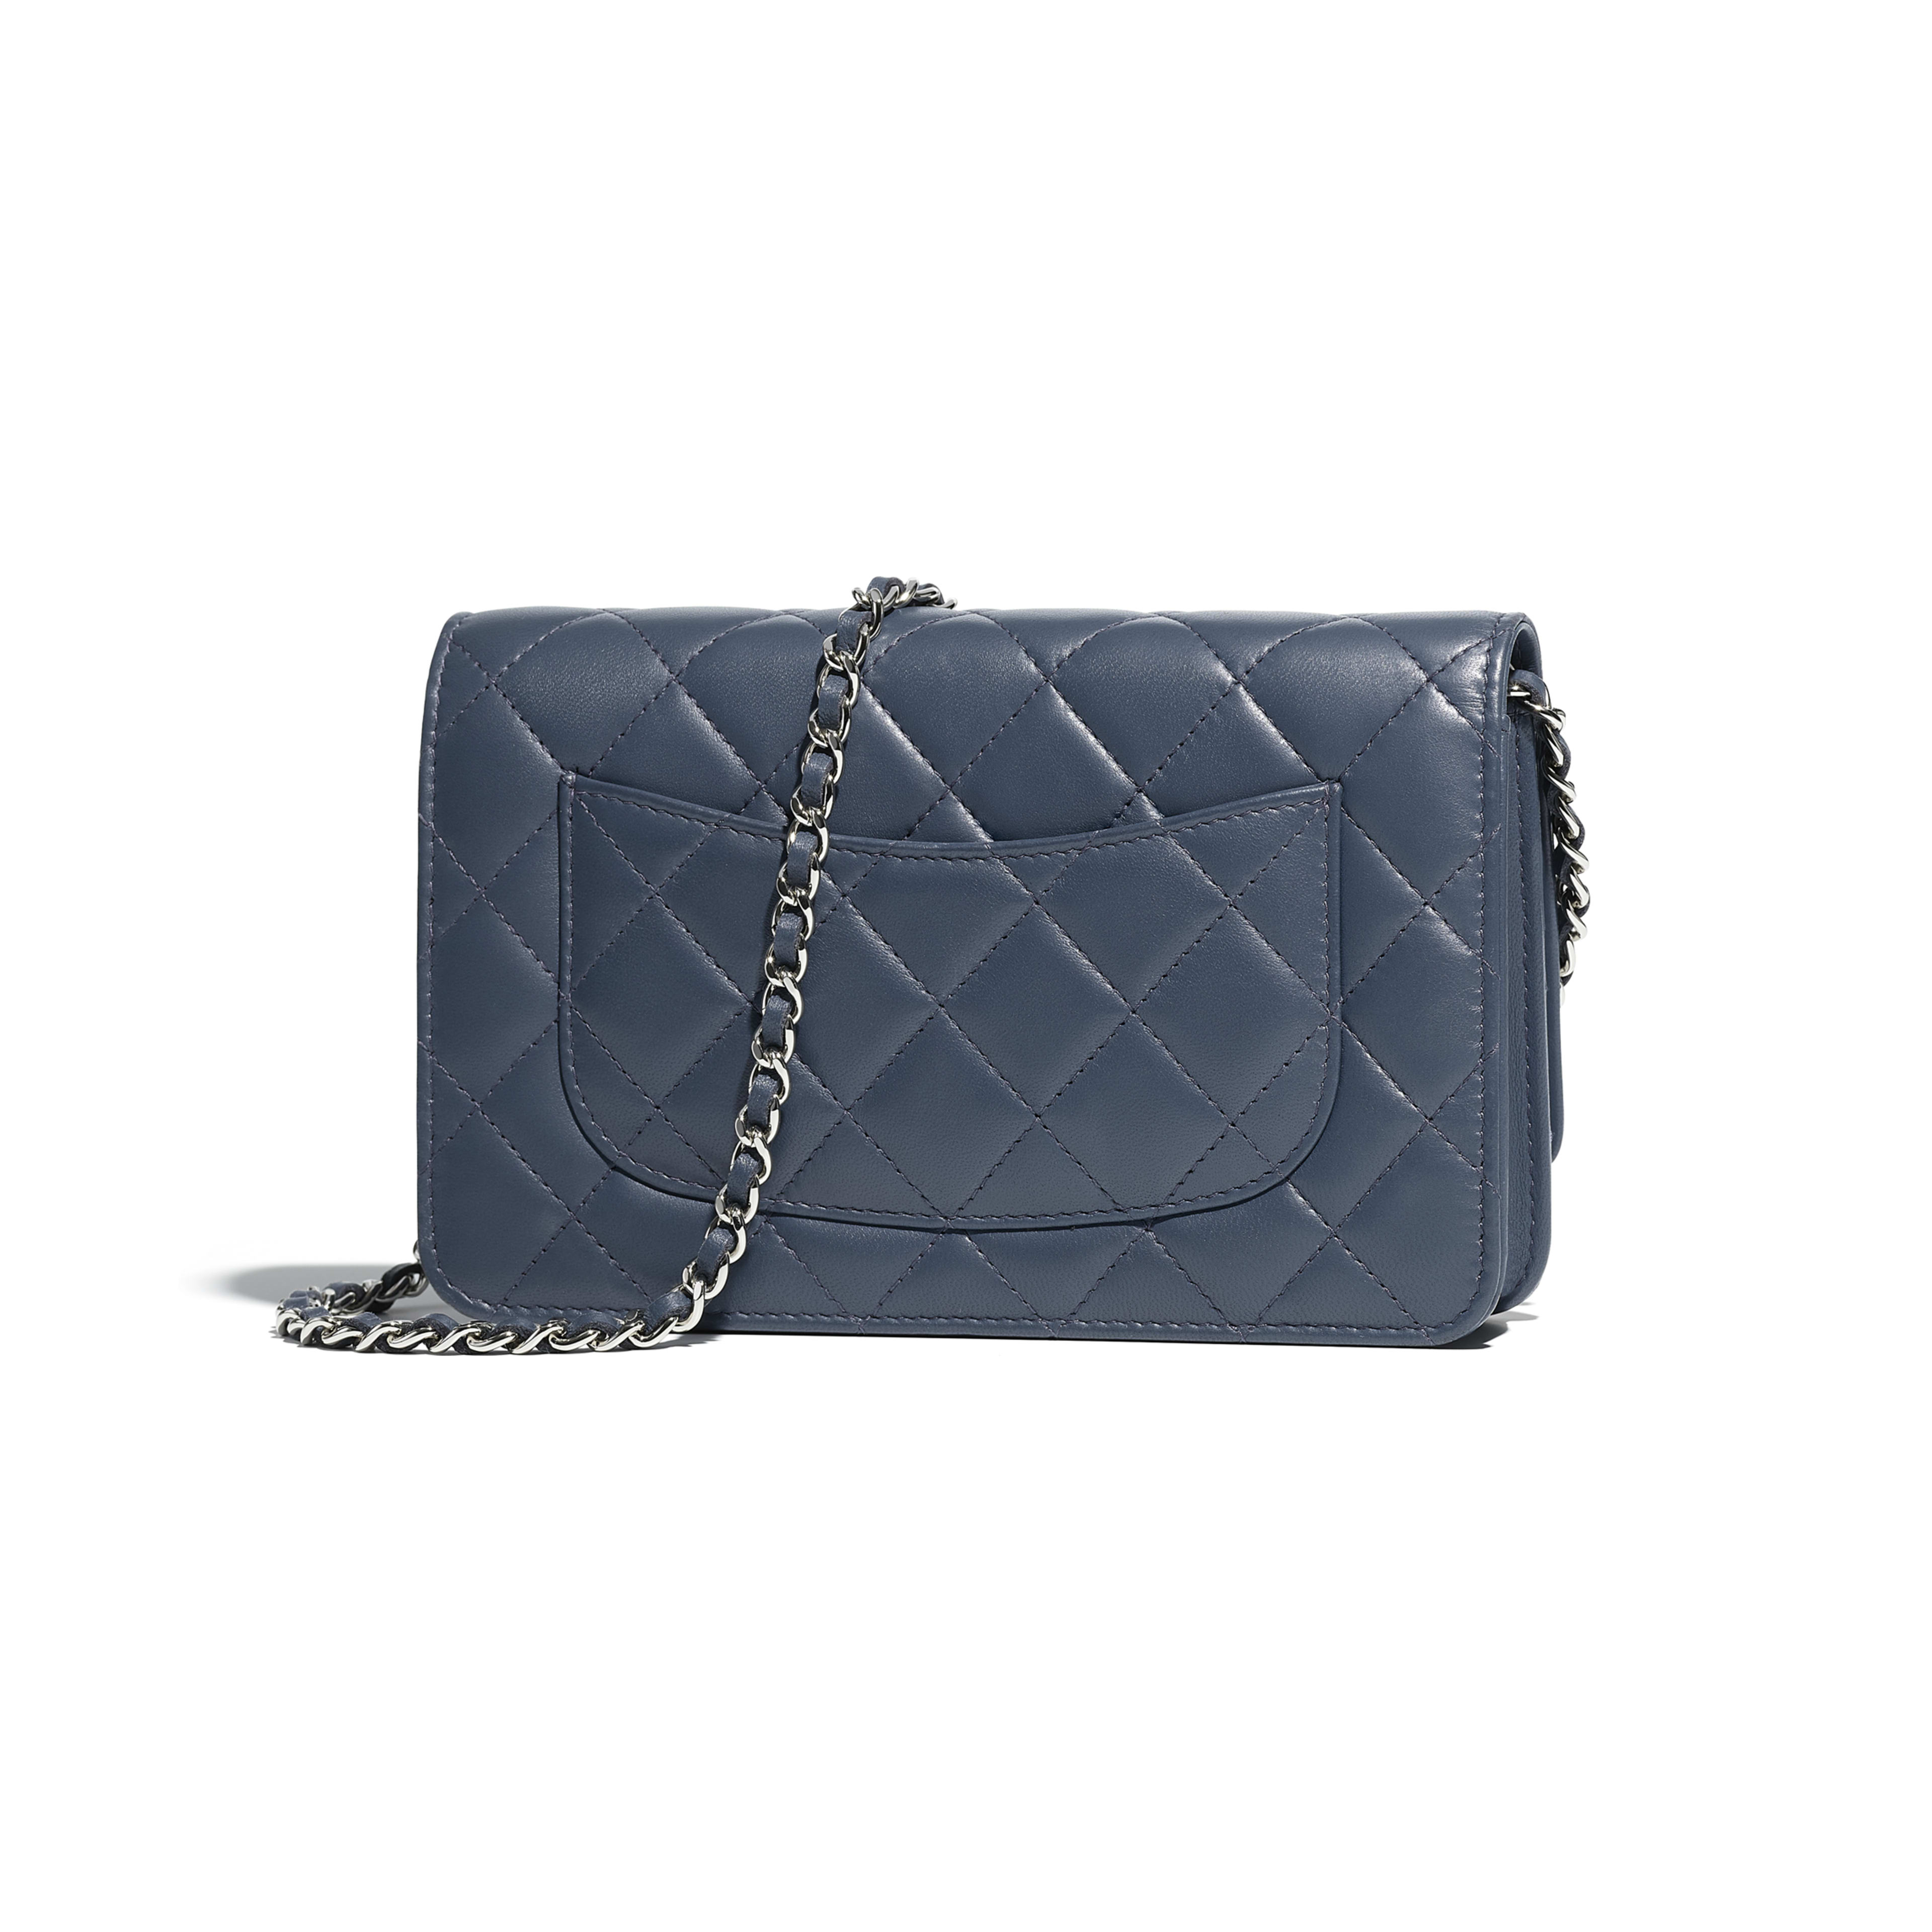 Classic Wallet on Chain - Blue - Lambskin & Silver-Tone Metal - Alternative view - see full sized version